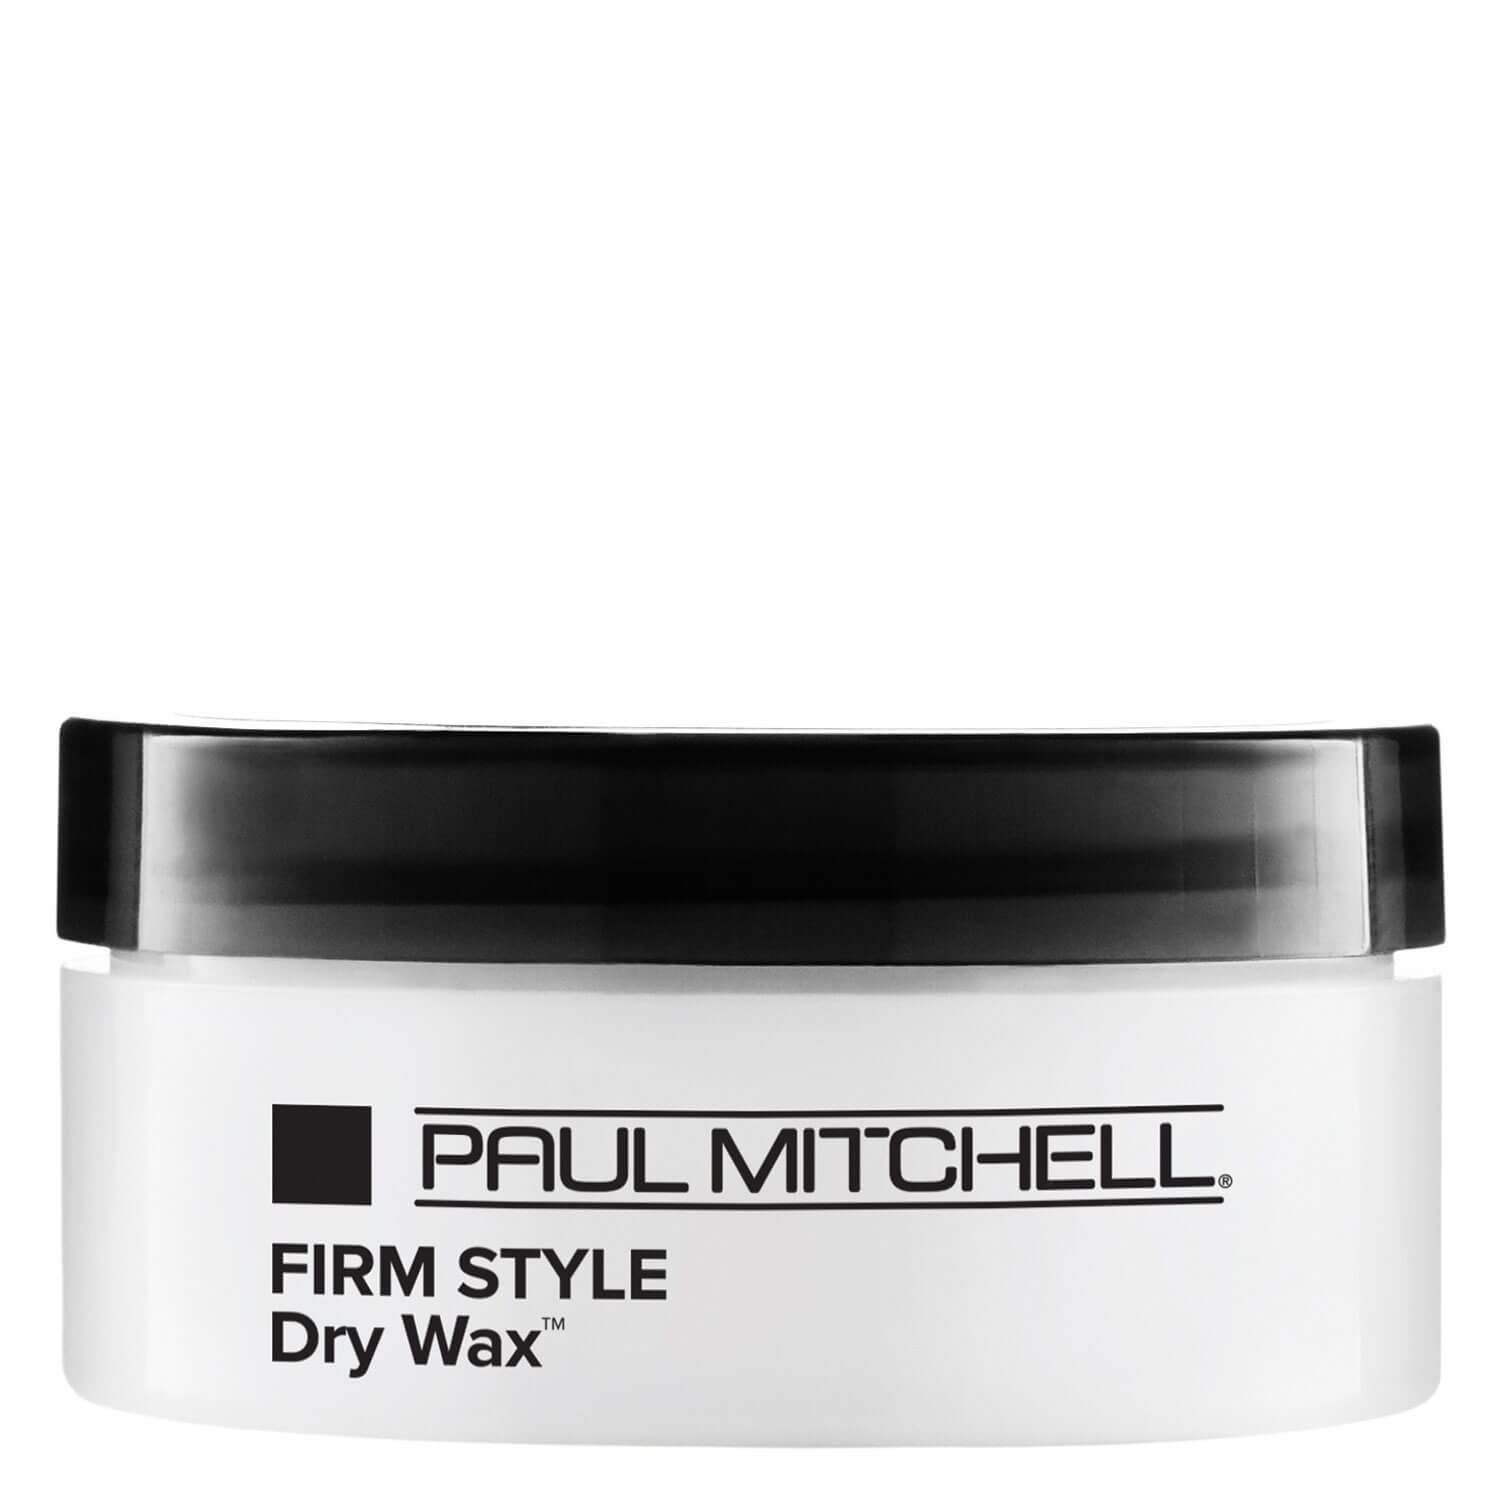 Firm Style - Dry Wax - 50g